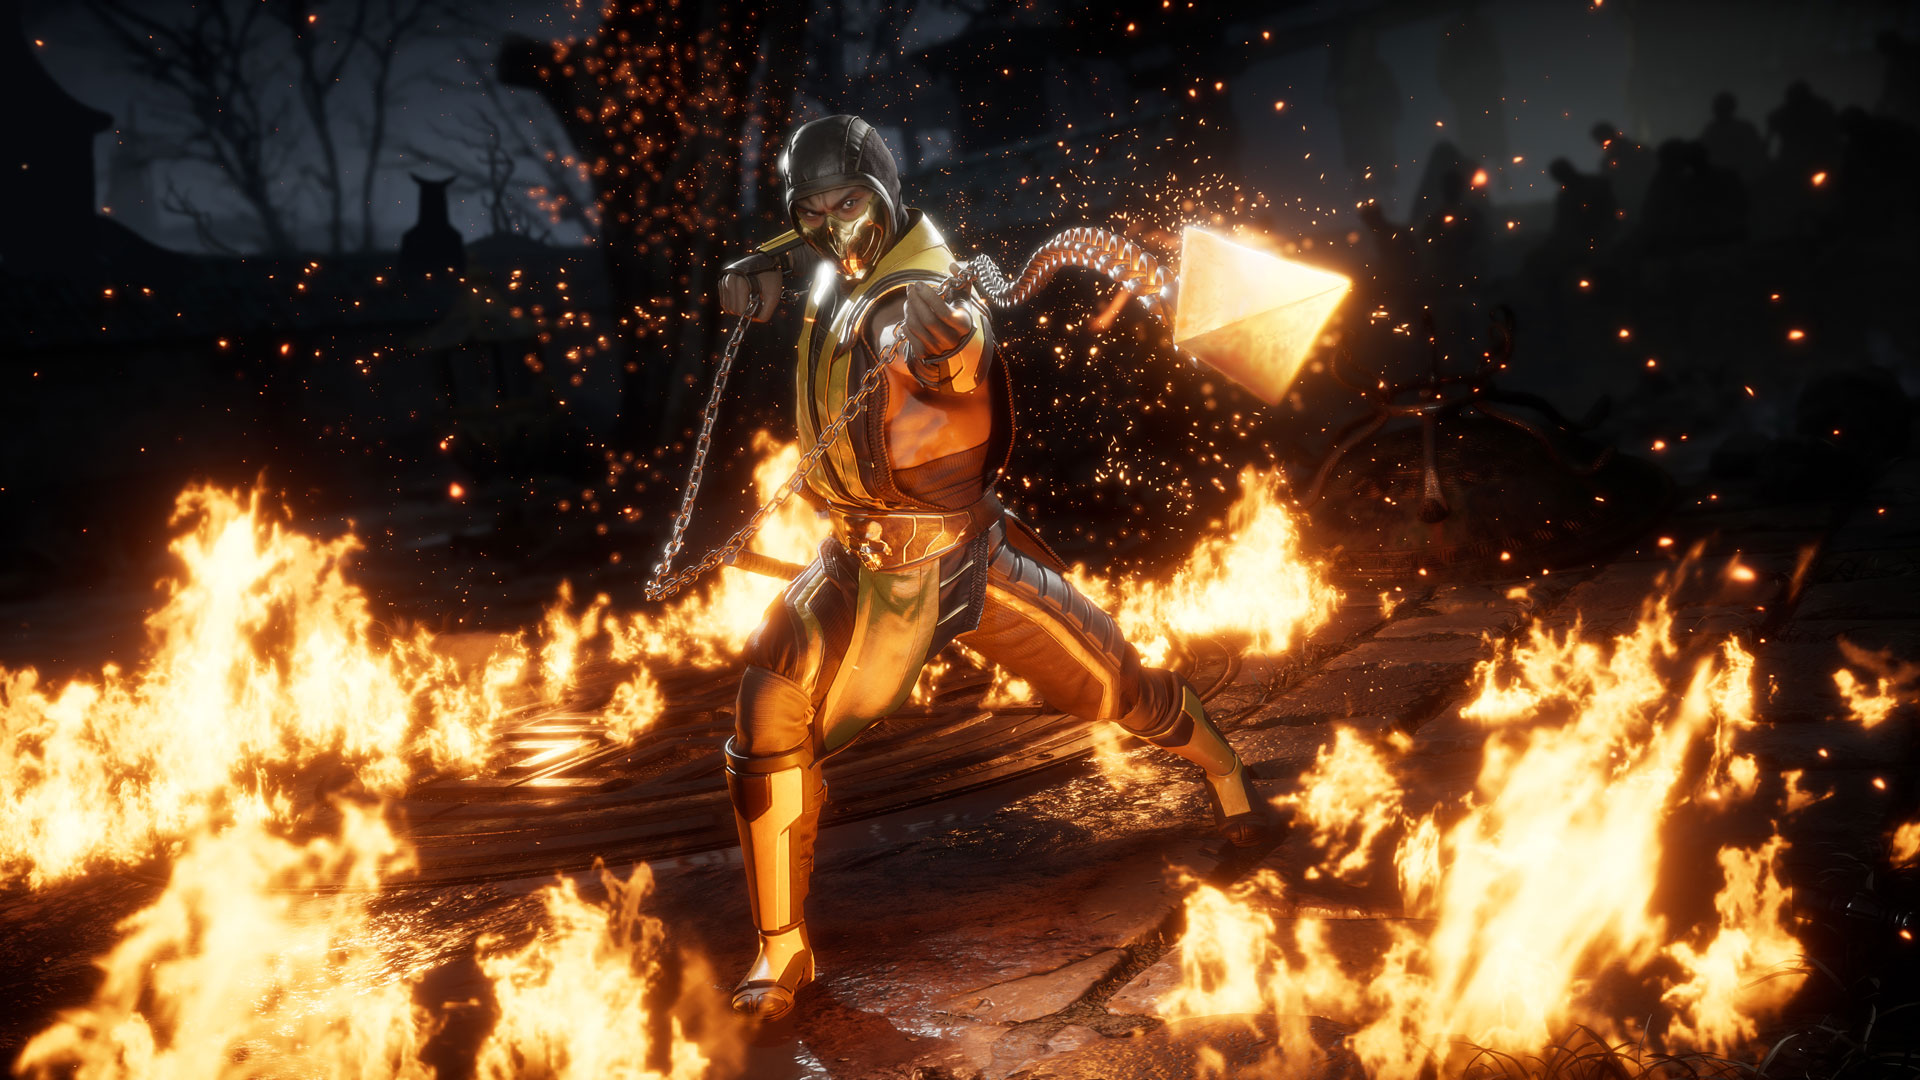 New Mortal Kombat 11 Patch Released for PC and Switch